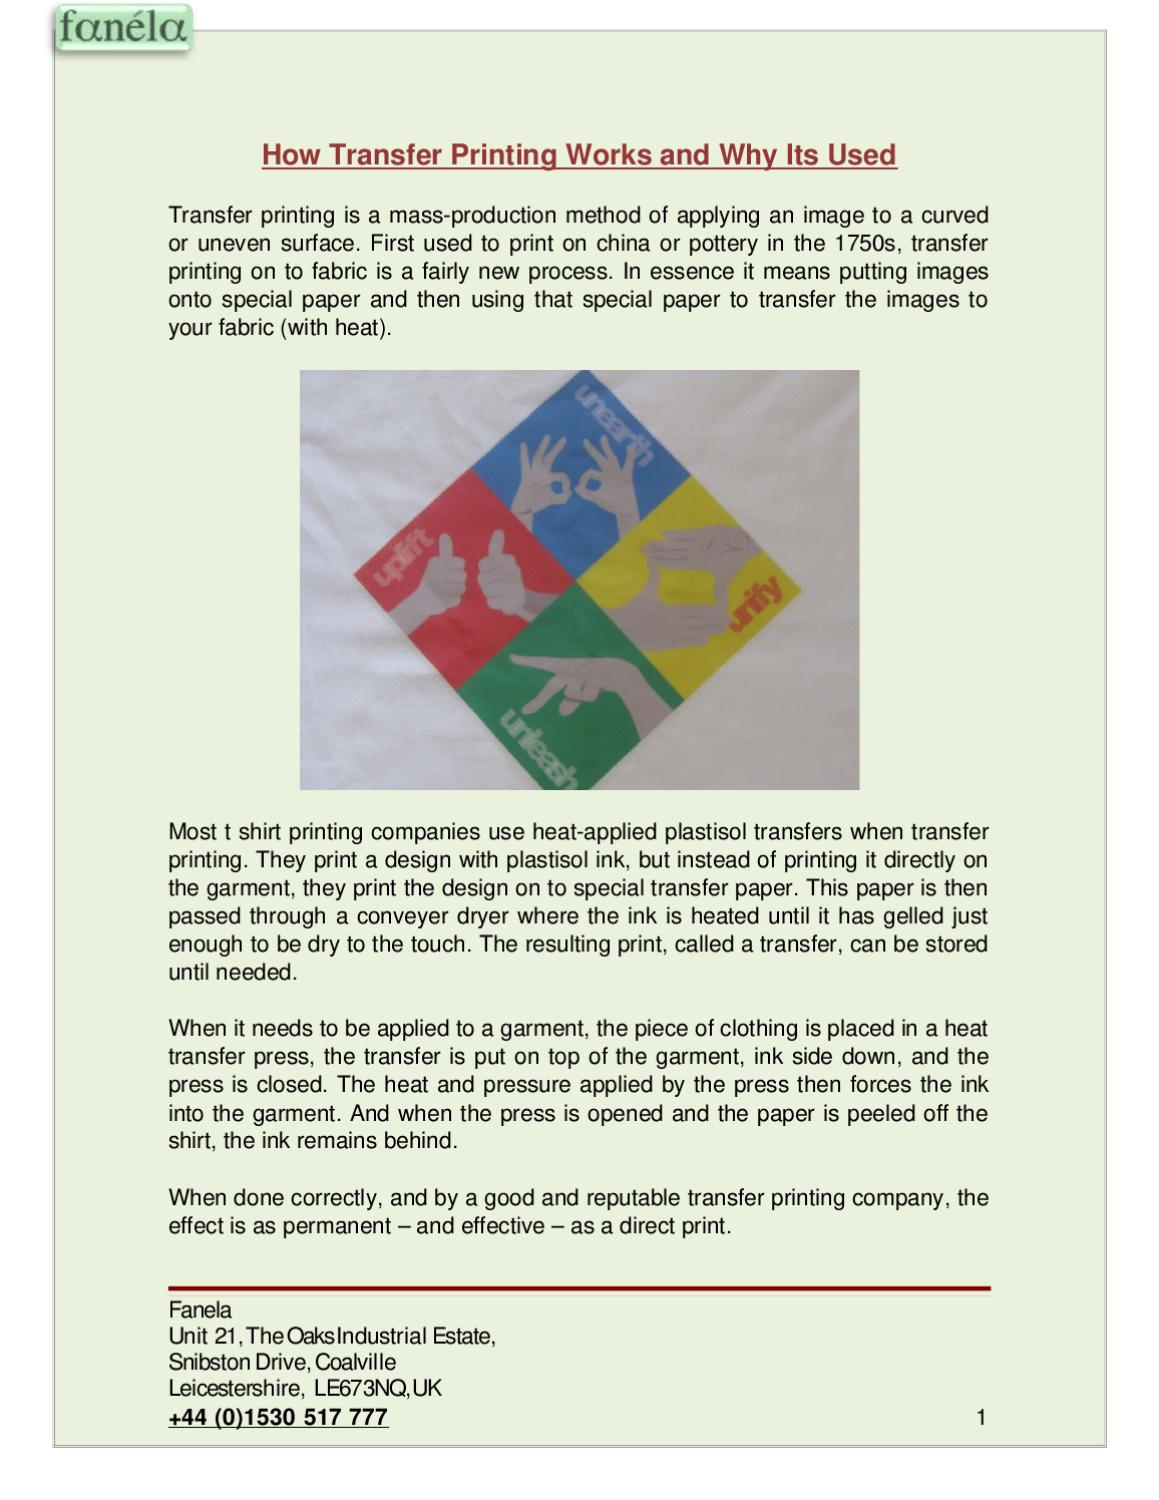 How Transfer Printing Works and Why Its Used by Michael